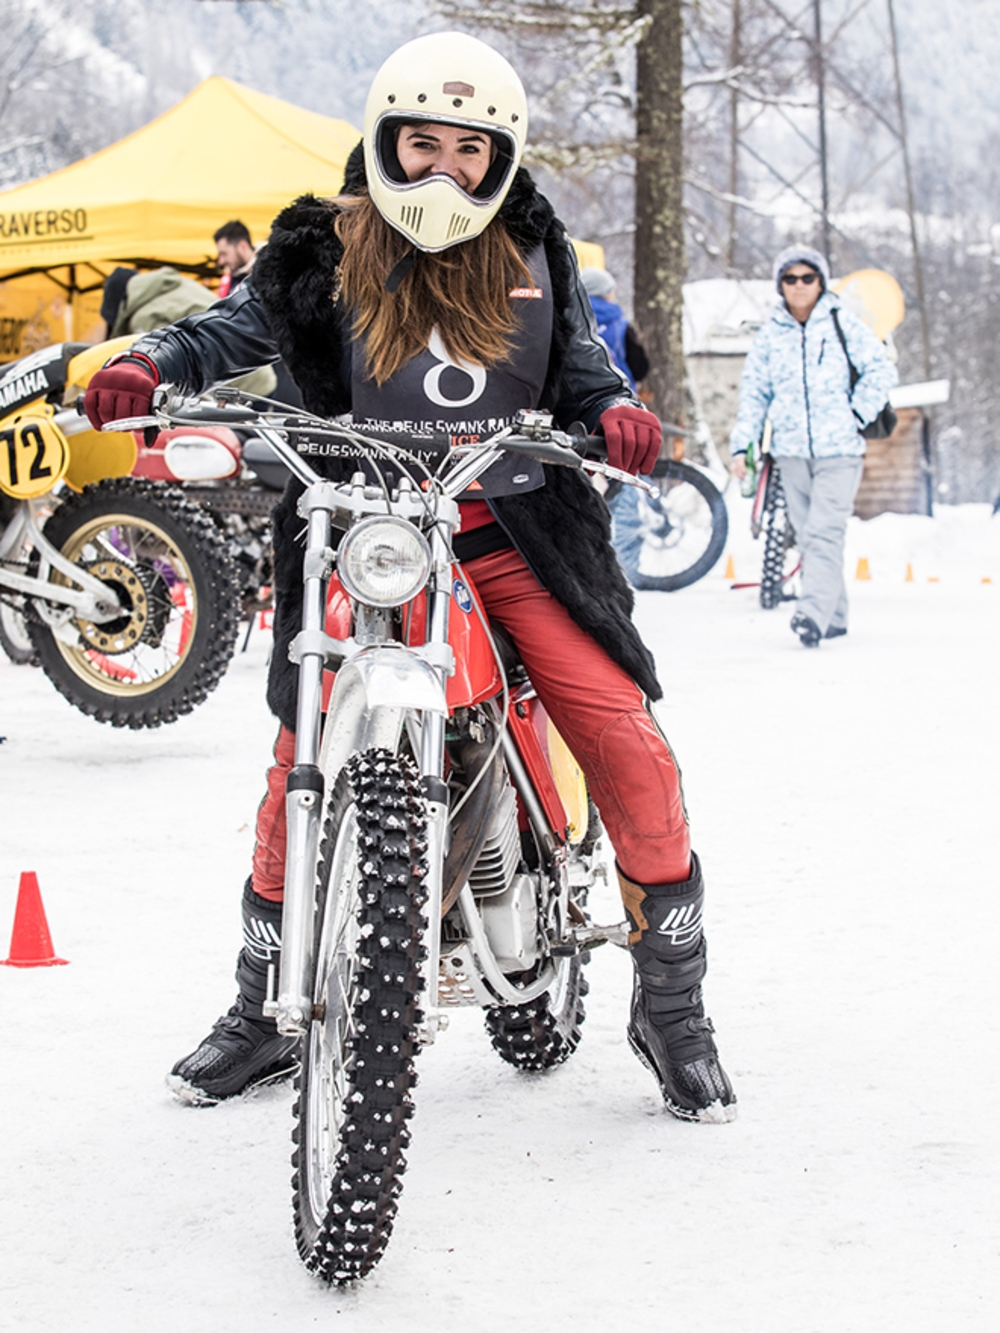 Fur collar, Elders Co. helmet and a vintage KTM — is there such thing as too much style? (Monti Smith)